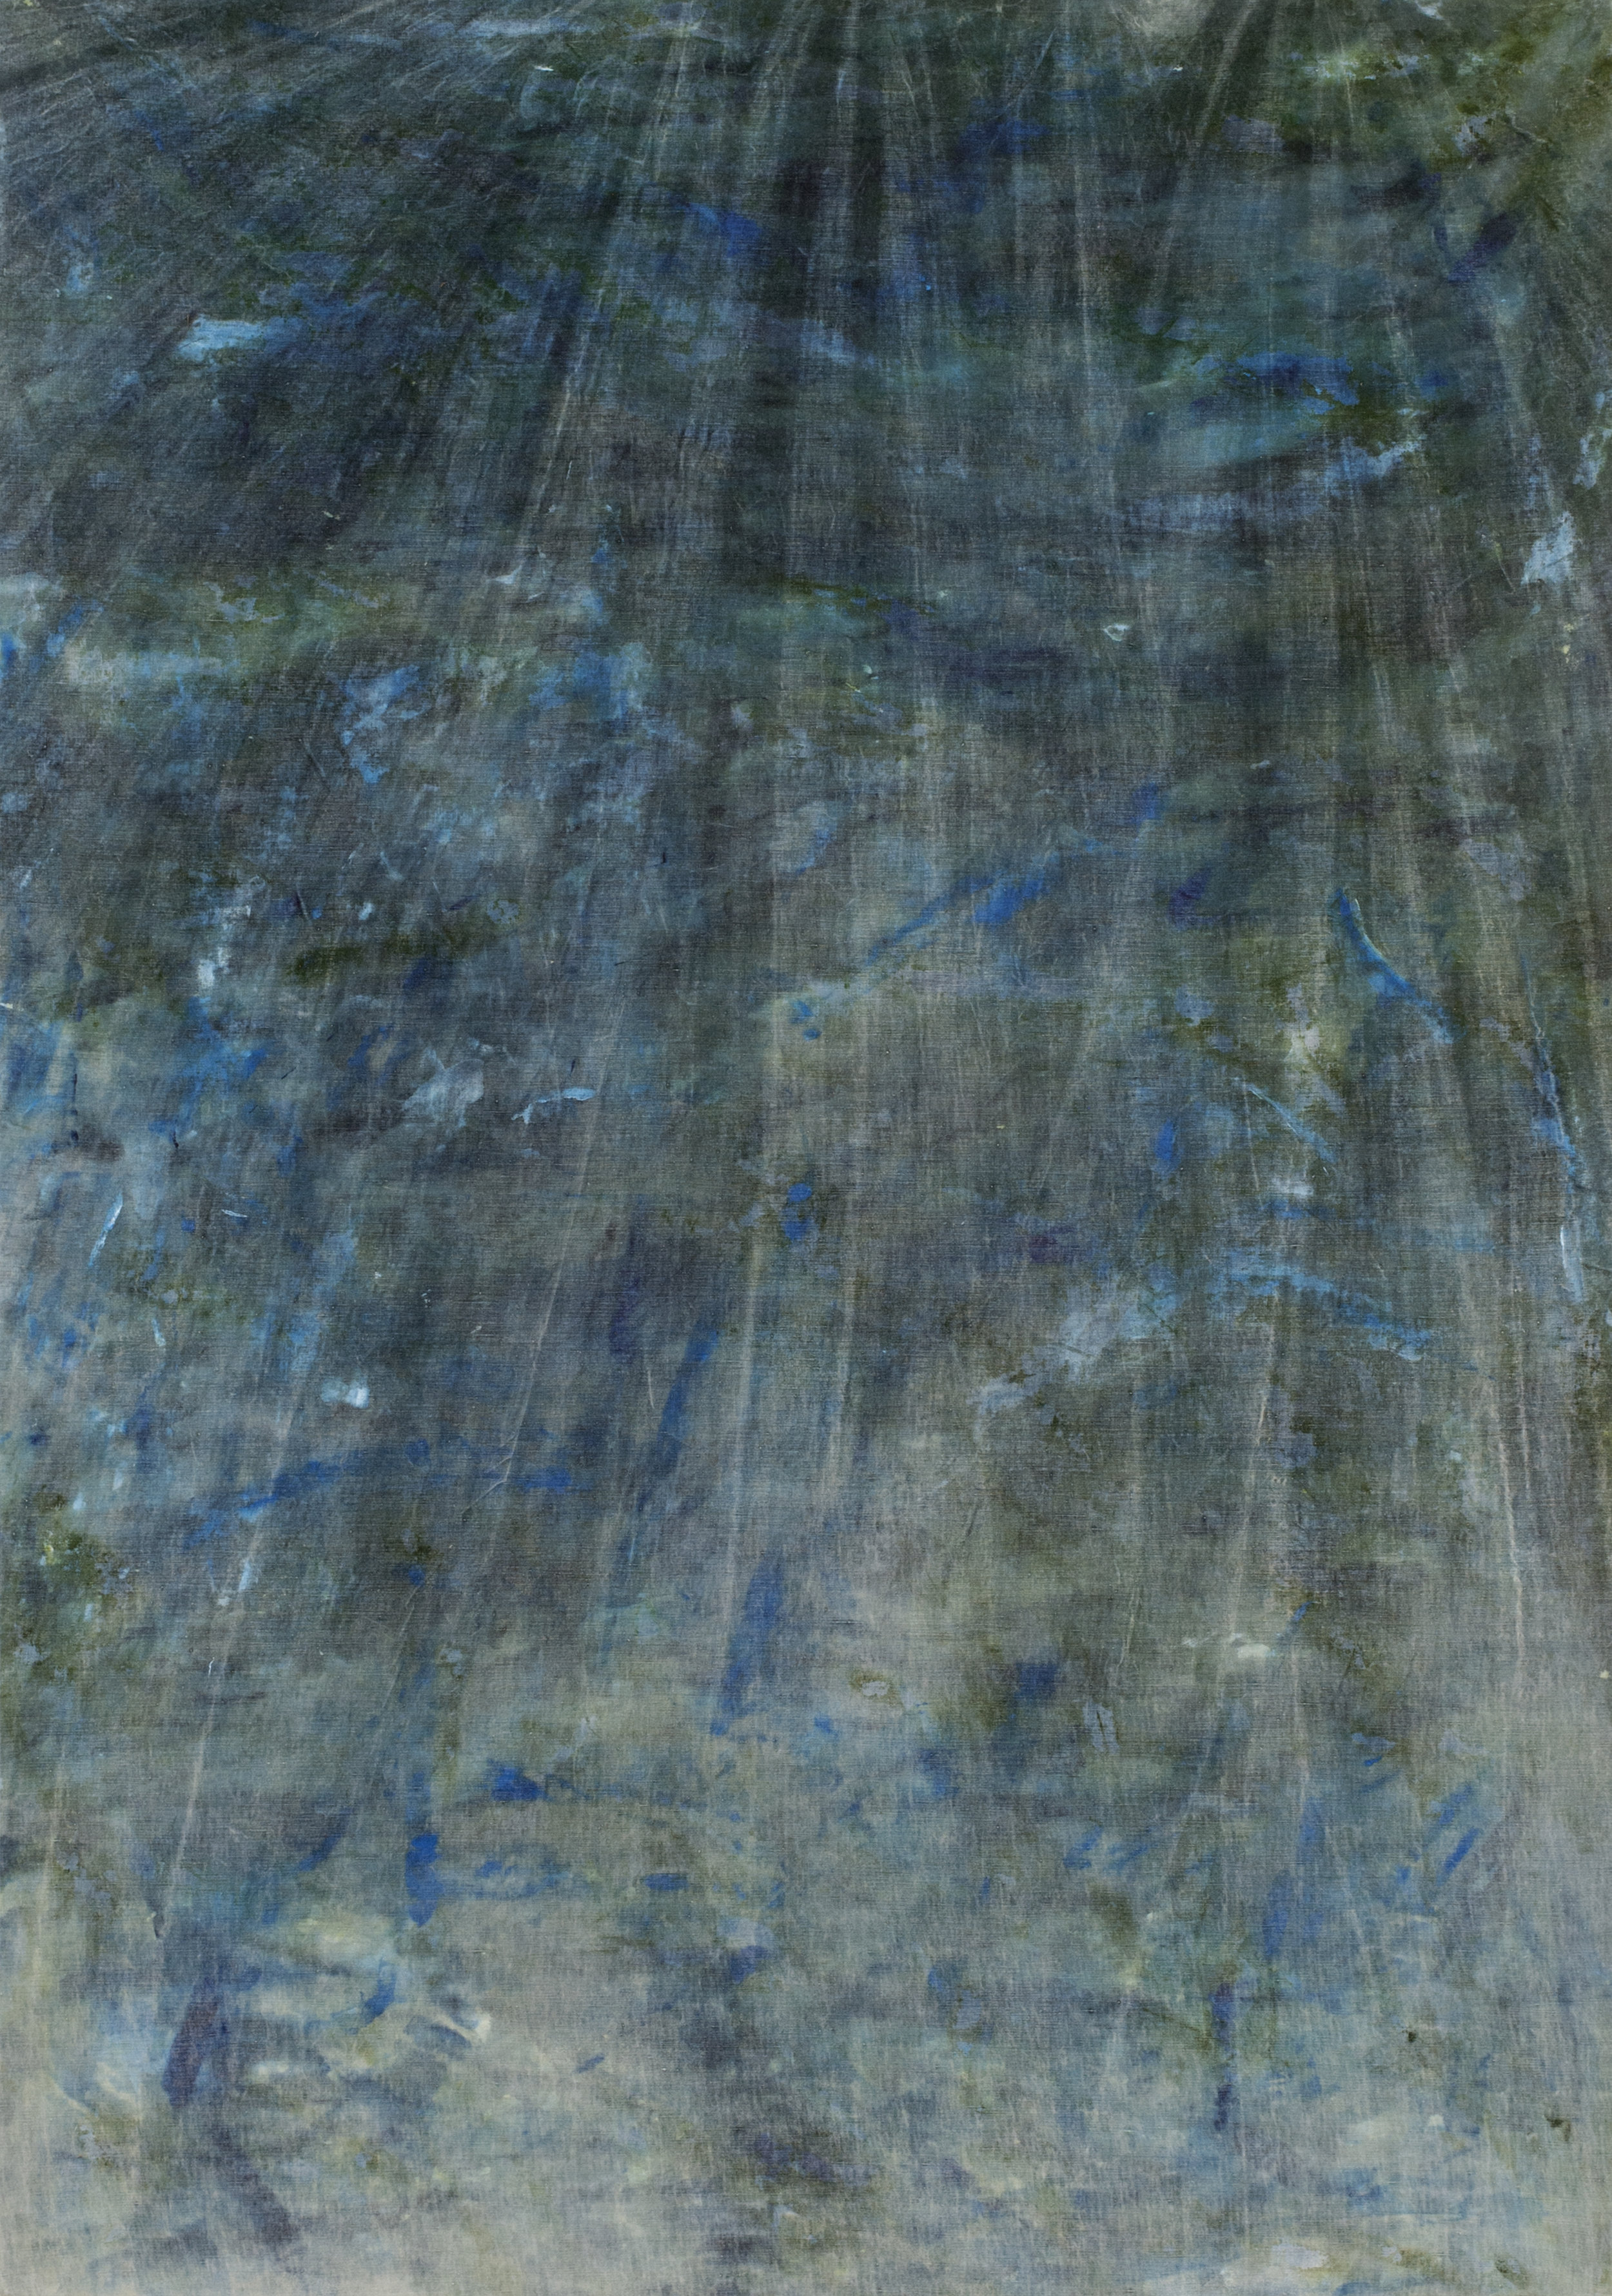 """monumental moving barriers  2018 mixed media on linen 110 x 76""""   INQUIRE"""